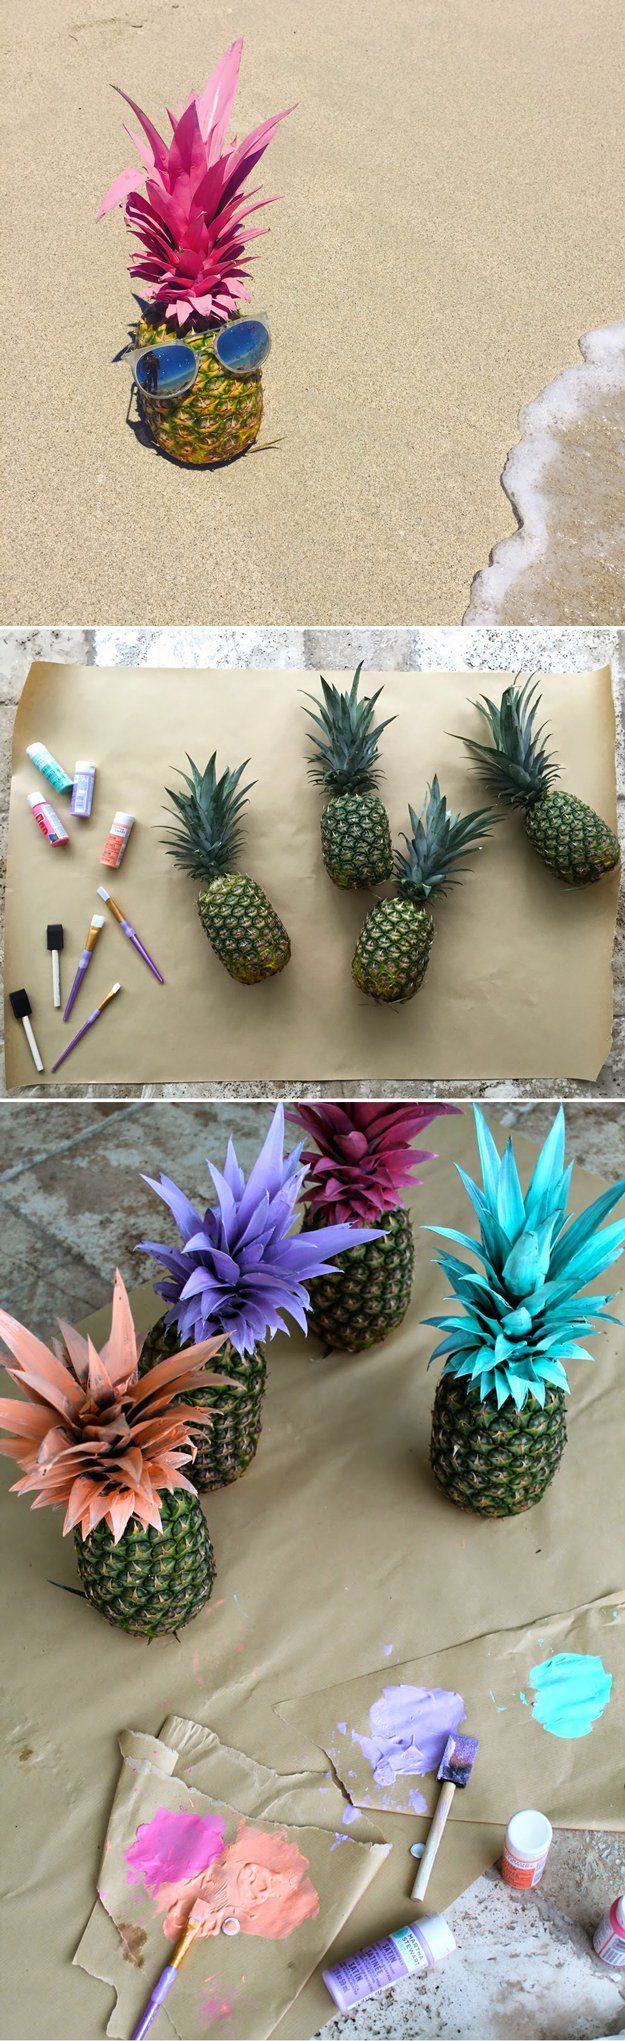 best 25+ beach party centerpieces ideas on pinterest | beach party